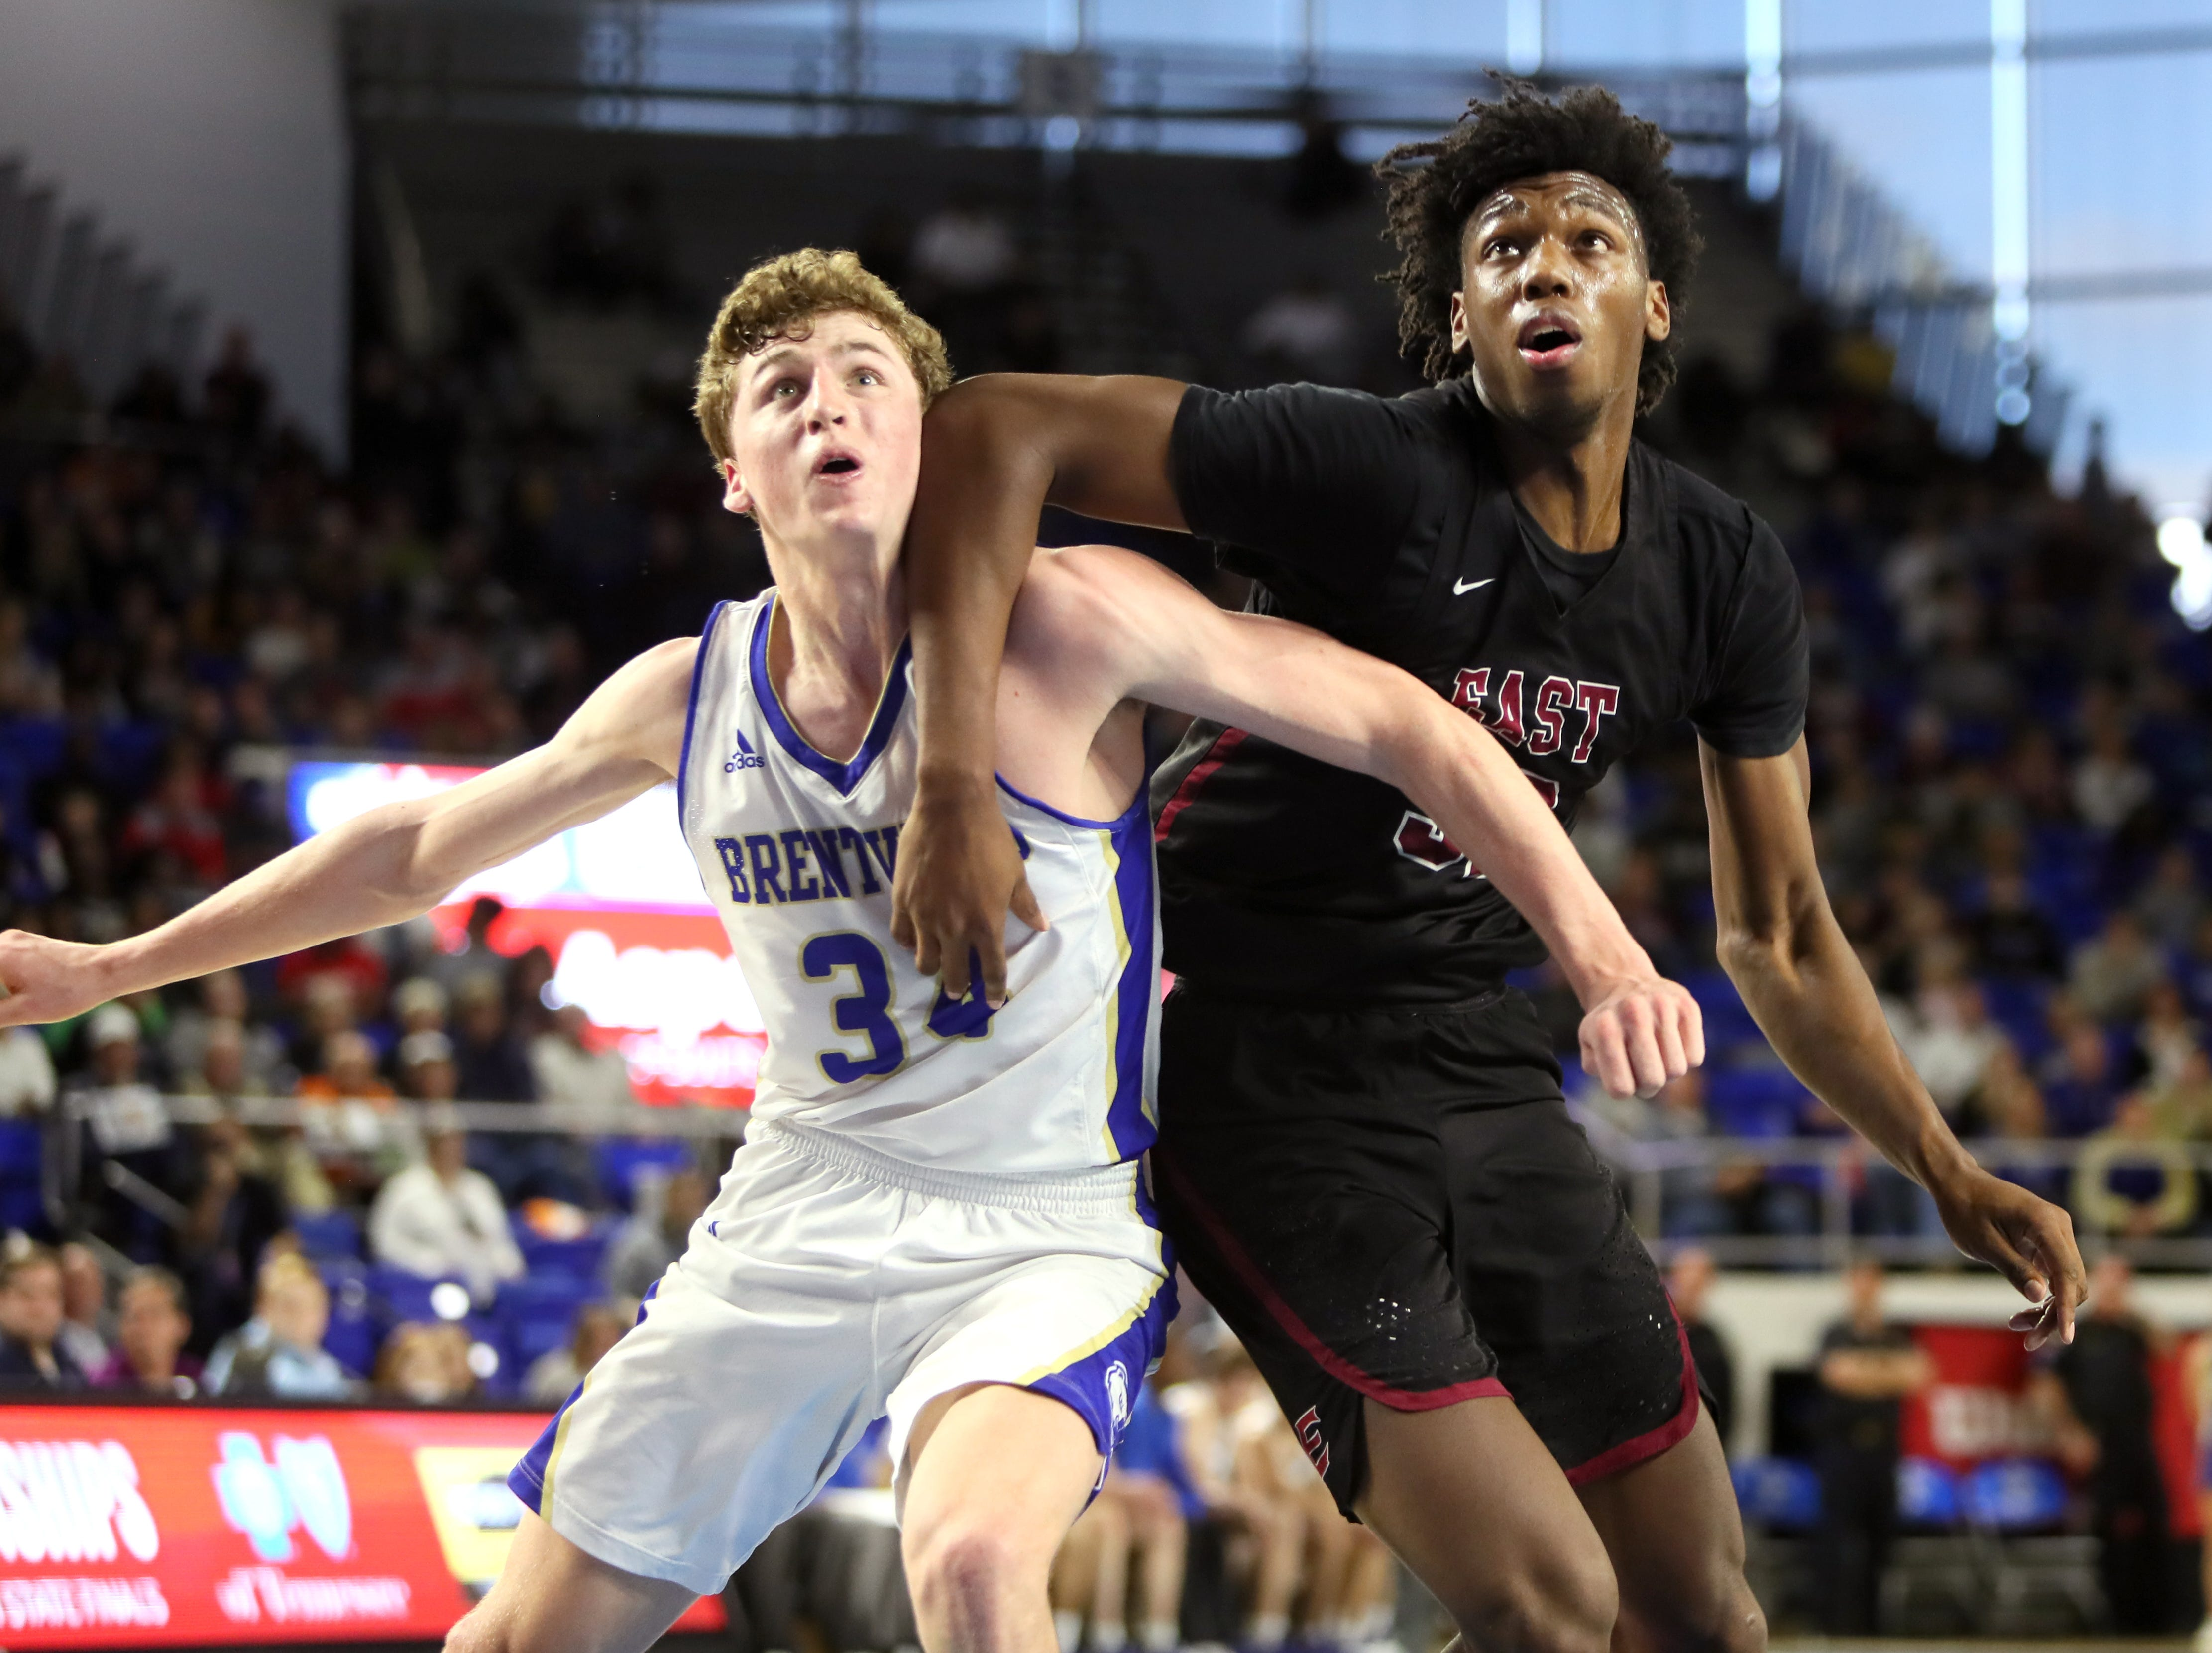 Memphis East's James Wiseman battles for position with Brentwood's Ben Mills during the Class AAA boys basketball state semifinal at the Murphy Center in Murfreesboro, Tenn. on Friday, March 15, 2019.